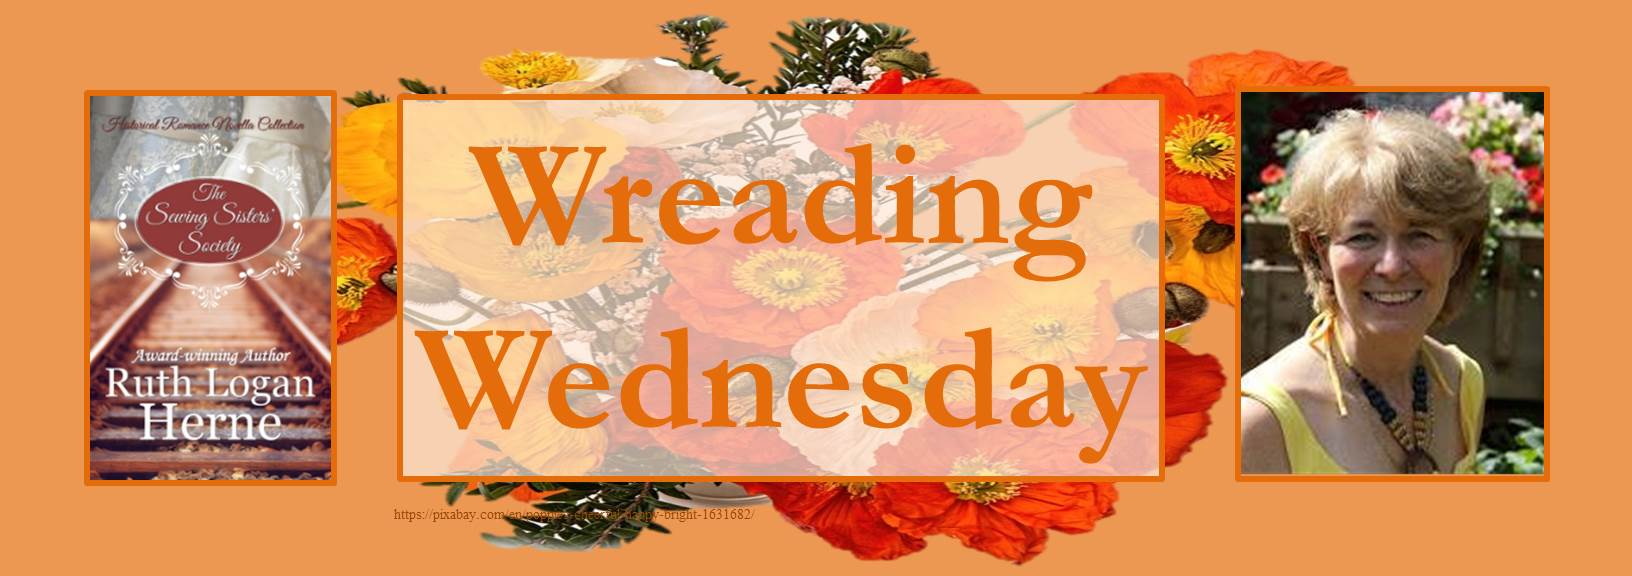 Wednesday 6 February 2019 Blogwords Wednesday 6 February 2019 Wreading Wednesday